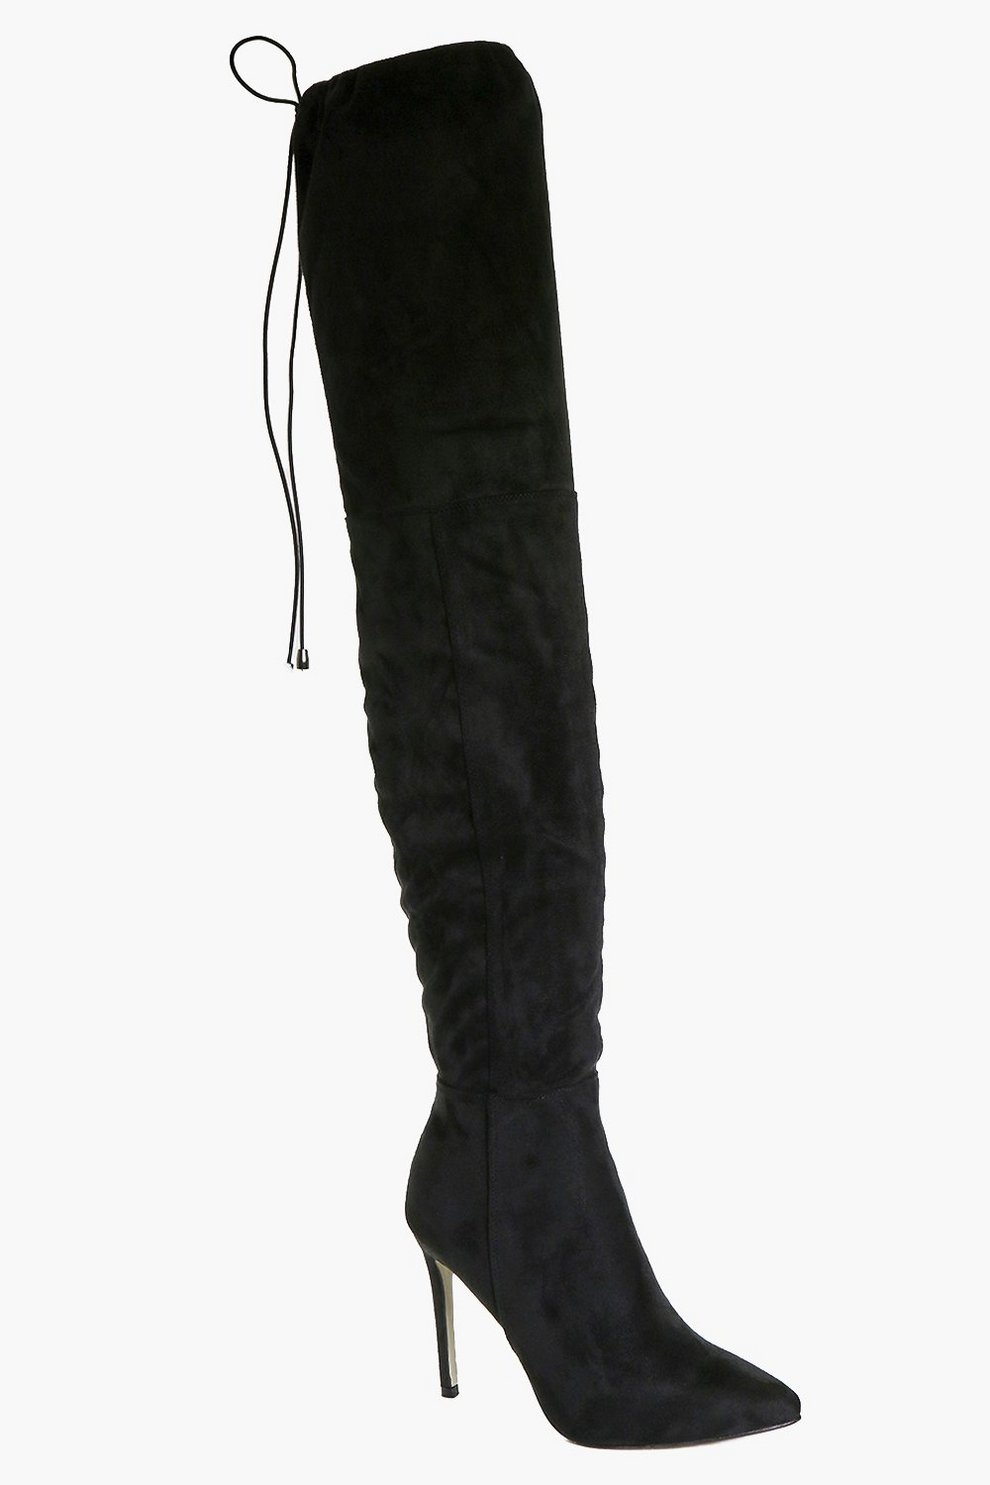 eeefa2923f Womens Black Pointed Toe Thigh High Boots